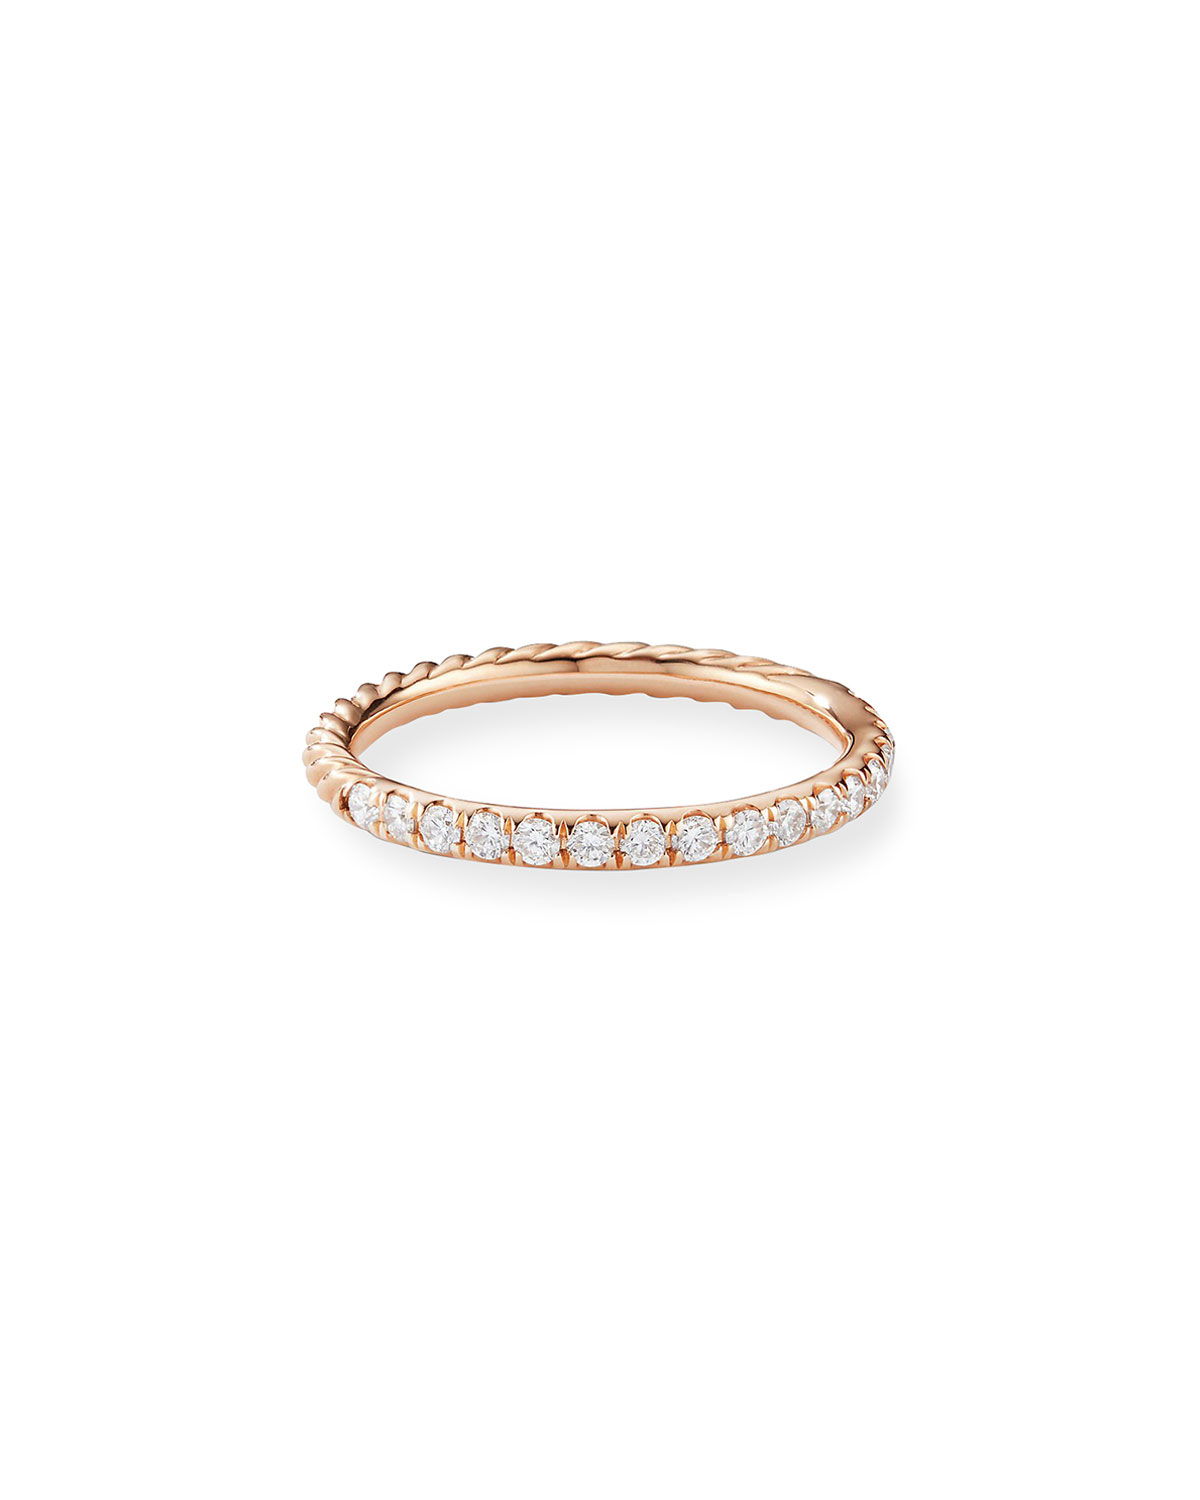 David Yurman Cable Collectibles Pave Diamond Band Ring in 18K Rose Gold, Size 6